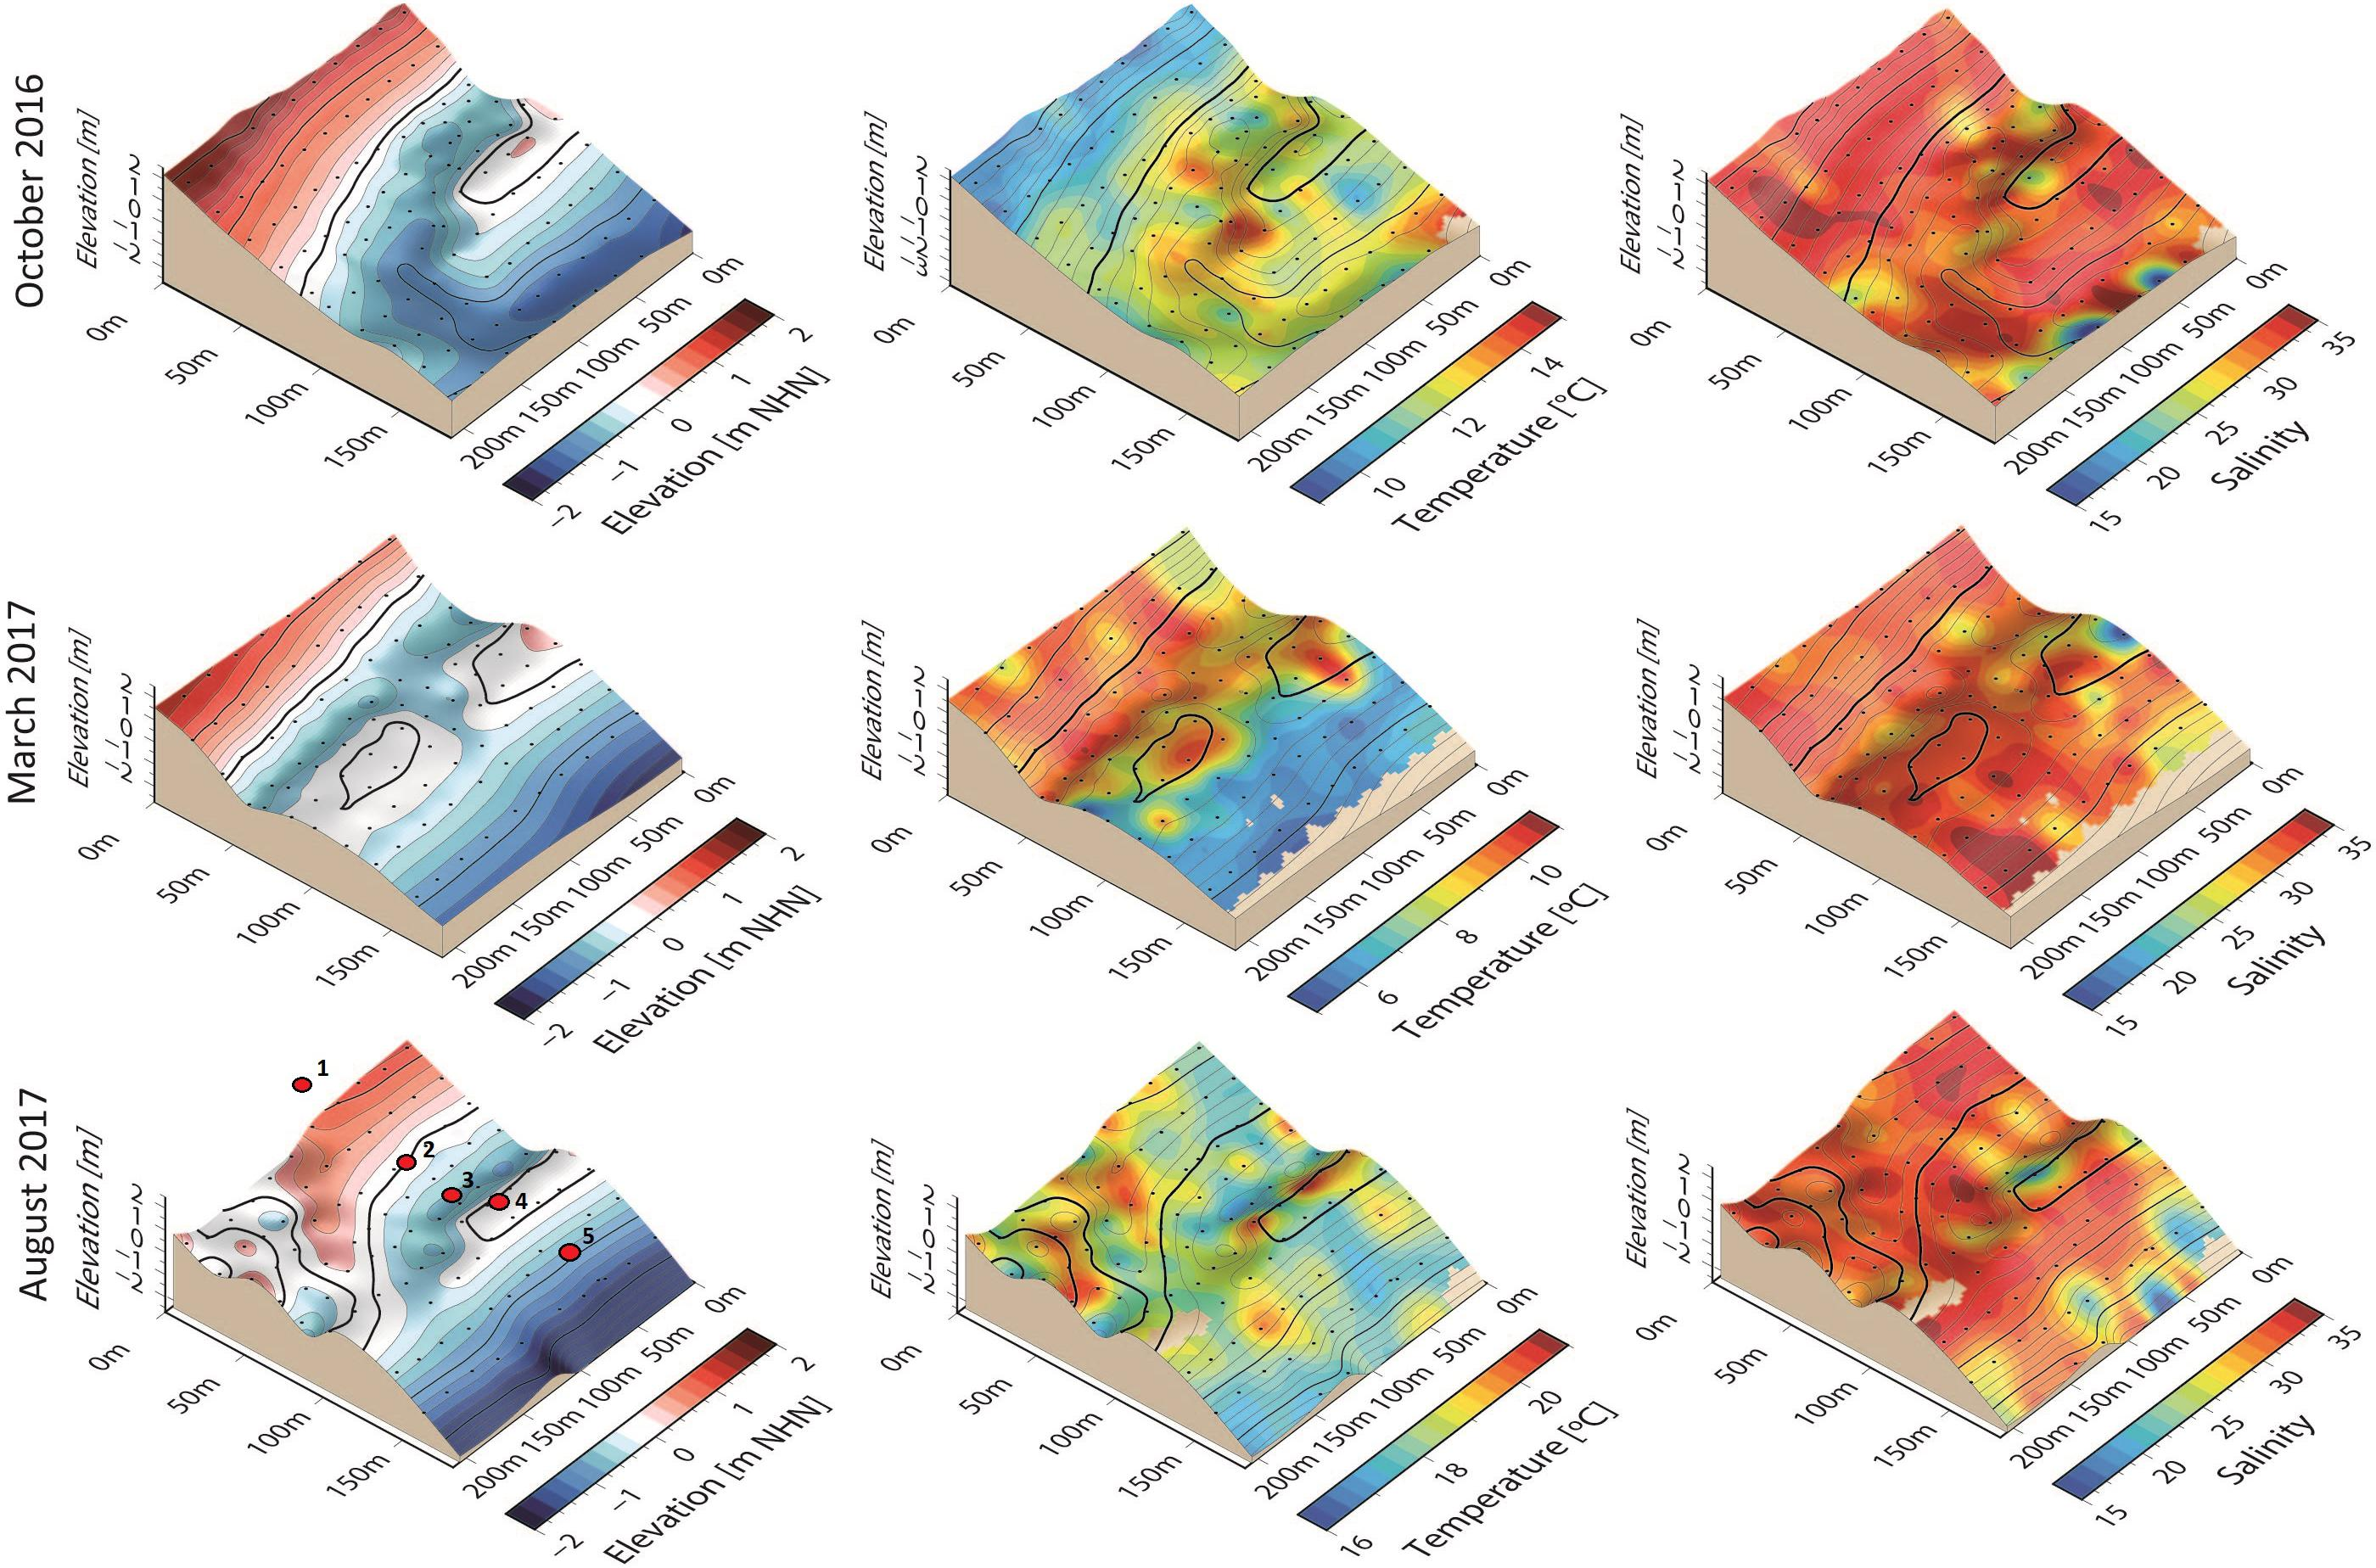 P 2000 Nhn.Frontiers Spatial And Temporal Patterns Of Pore Water